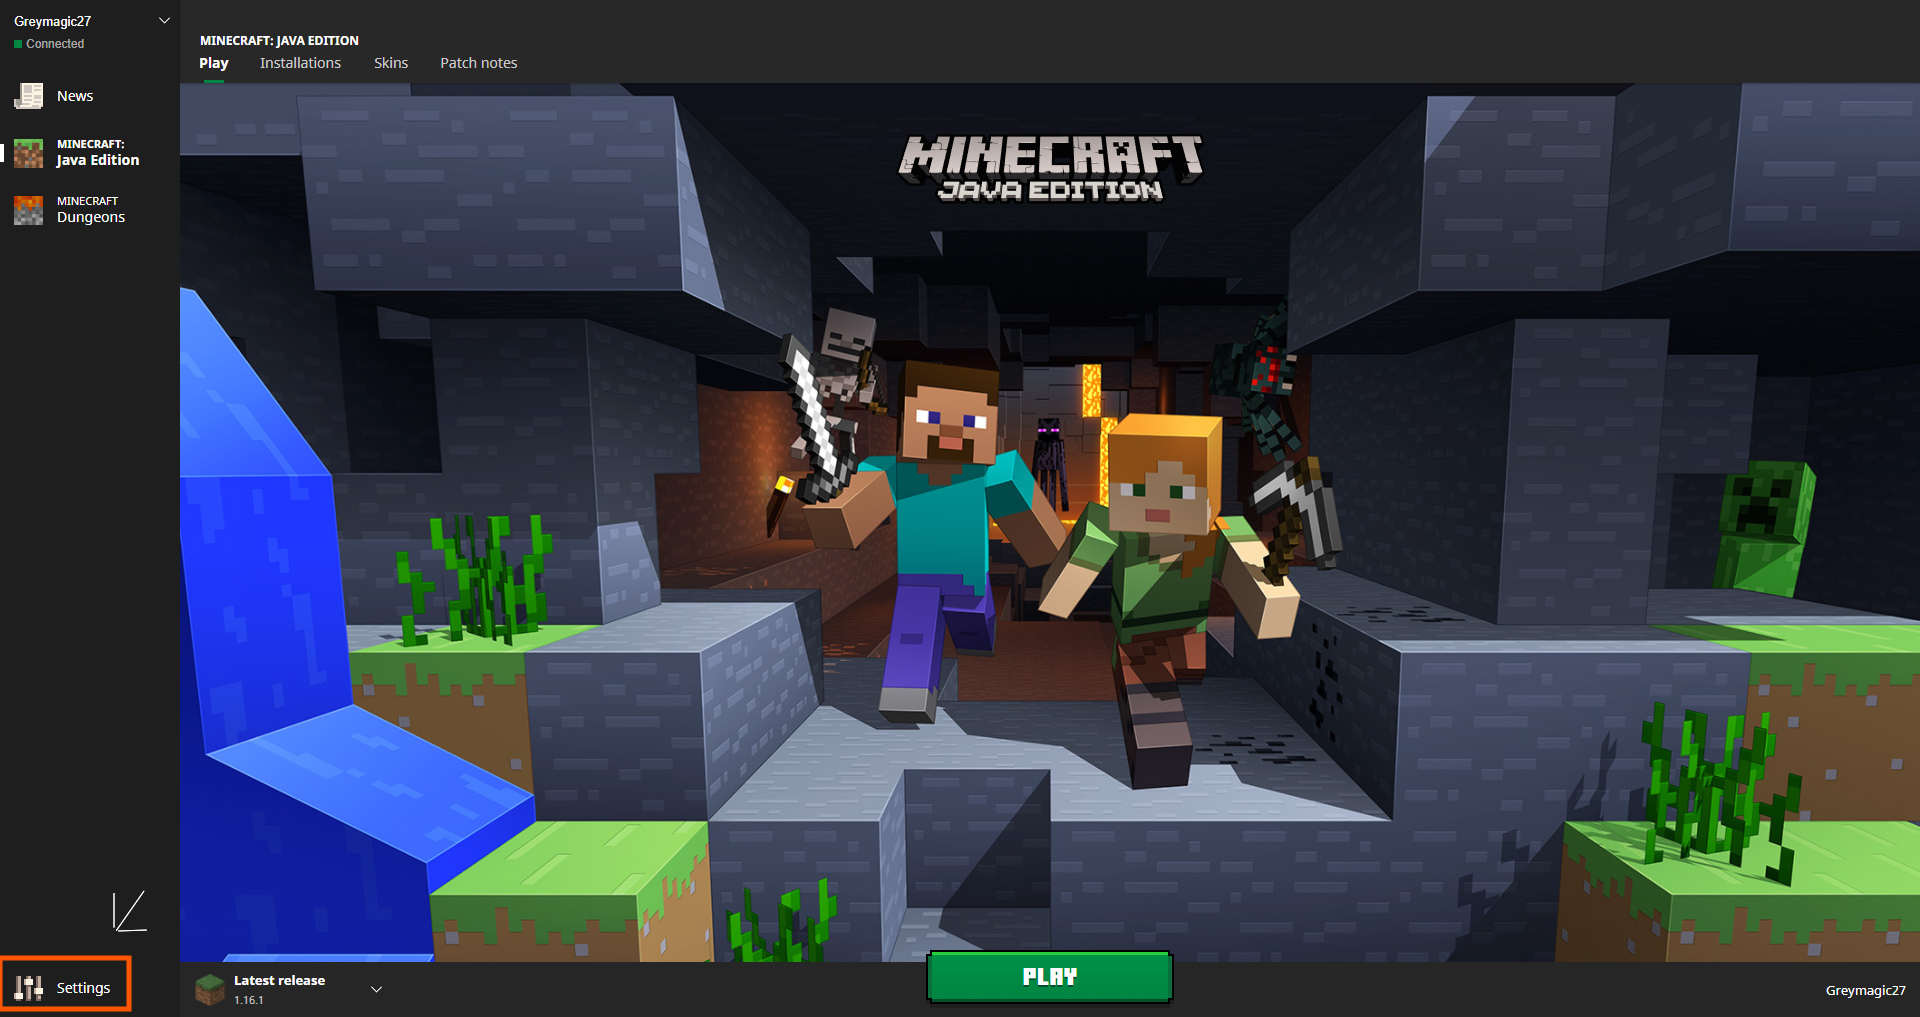 Minecraft launcher showing Settings button